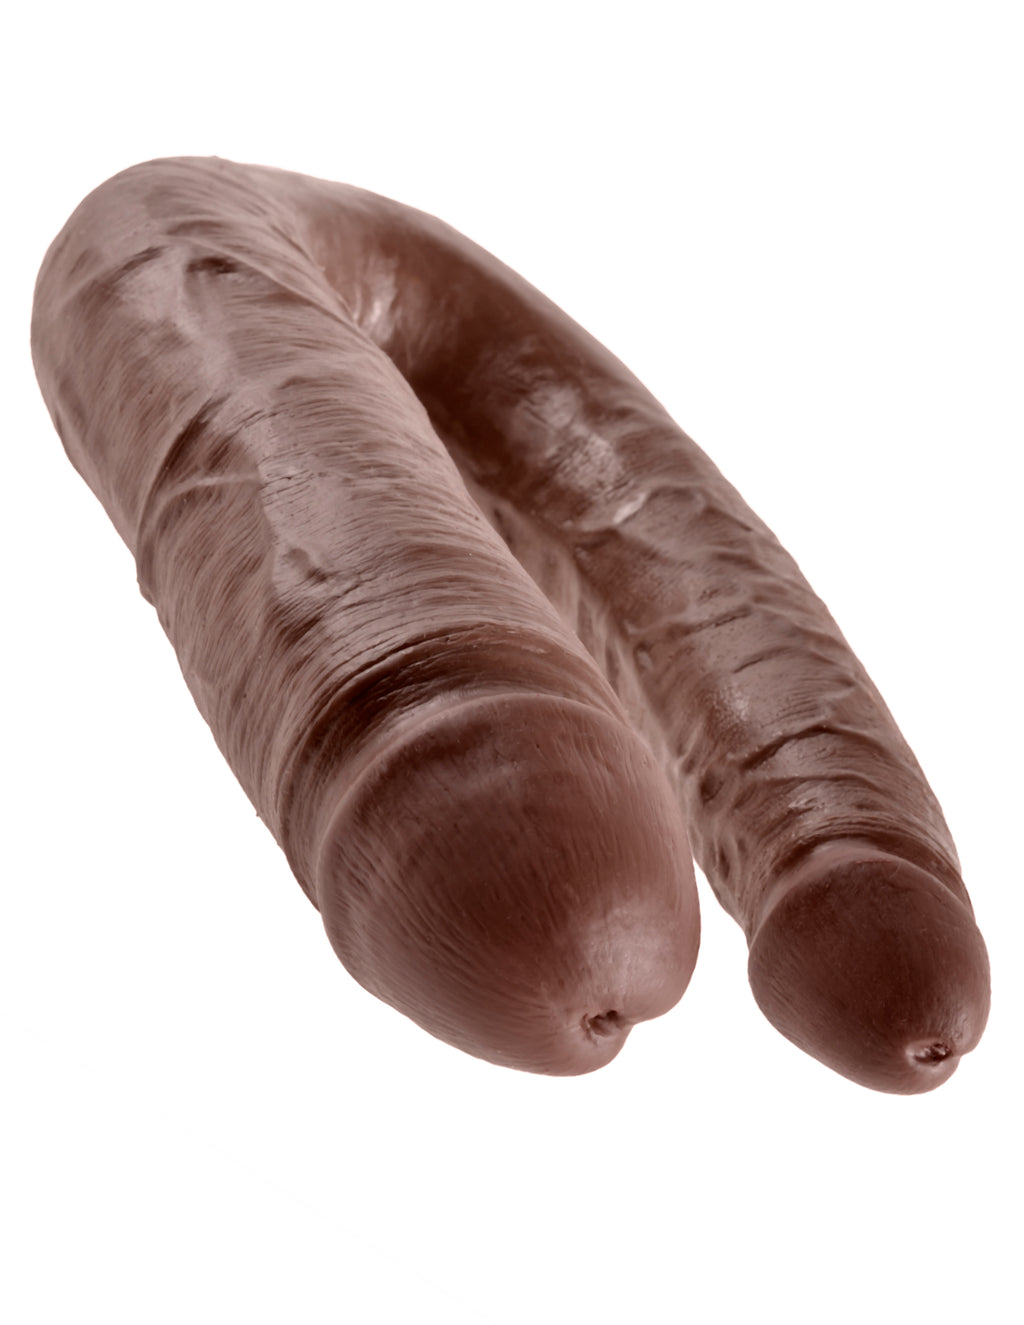 King Cock U-Shaped Large Double Trouble Brown | Dildos, Vibrator, Realistic Dildos, Sex Toys For Women, Sex Toys, Adult Toys | My Sex Shop